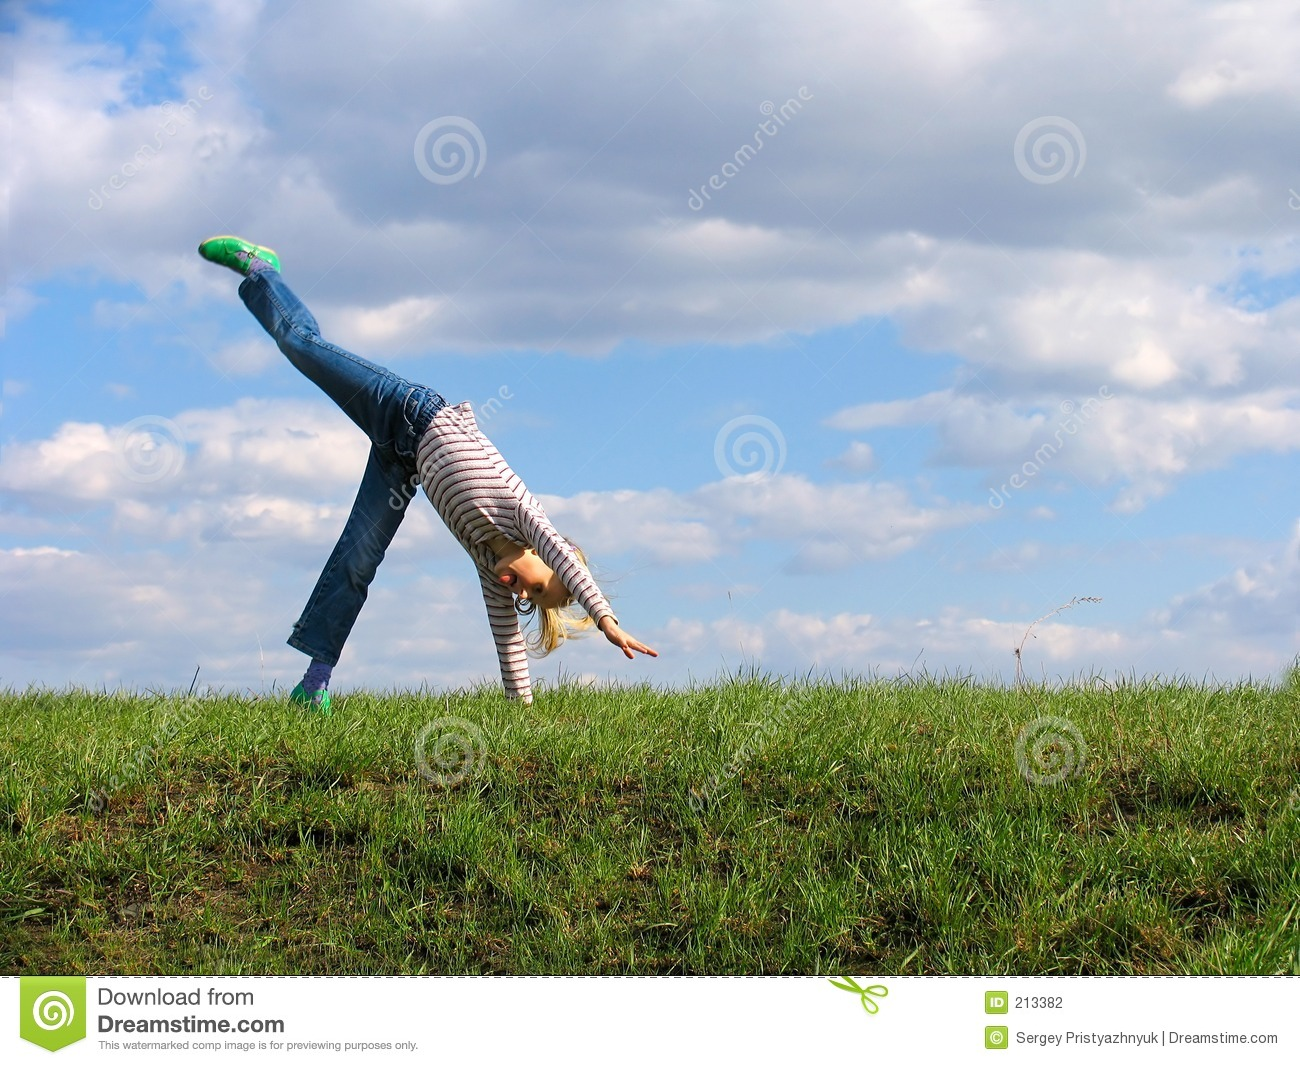 Somersault On Grass On The Sky Clouds Background